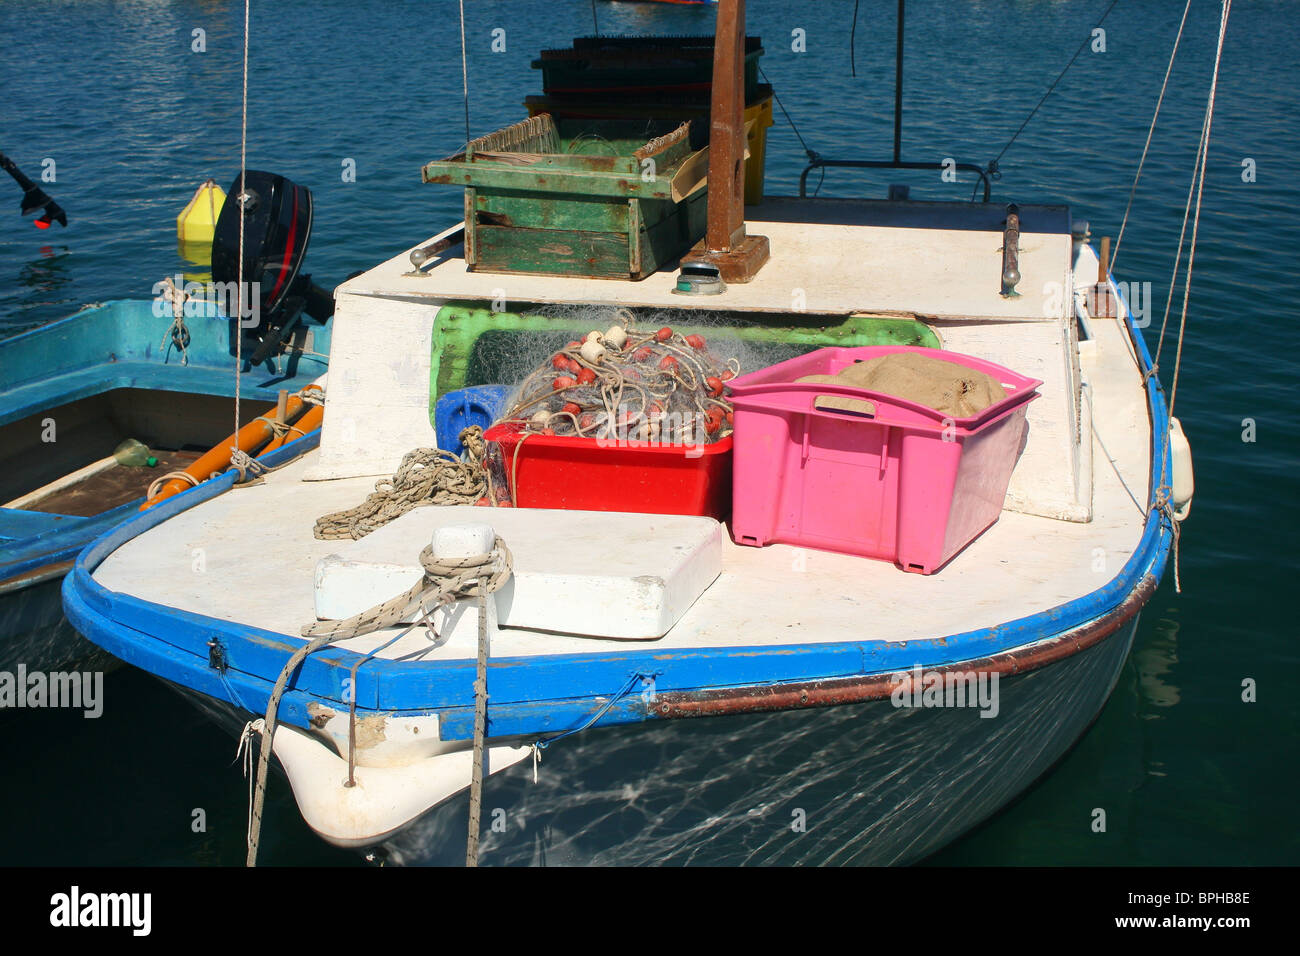 Fishing boat with equipment - Stock Image